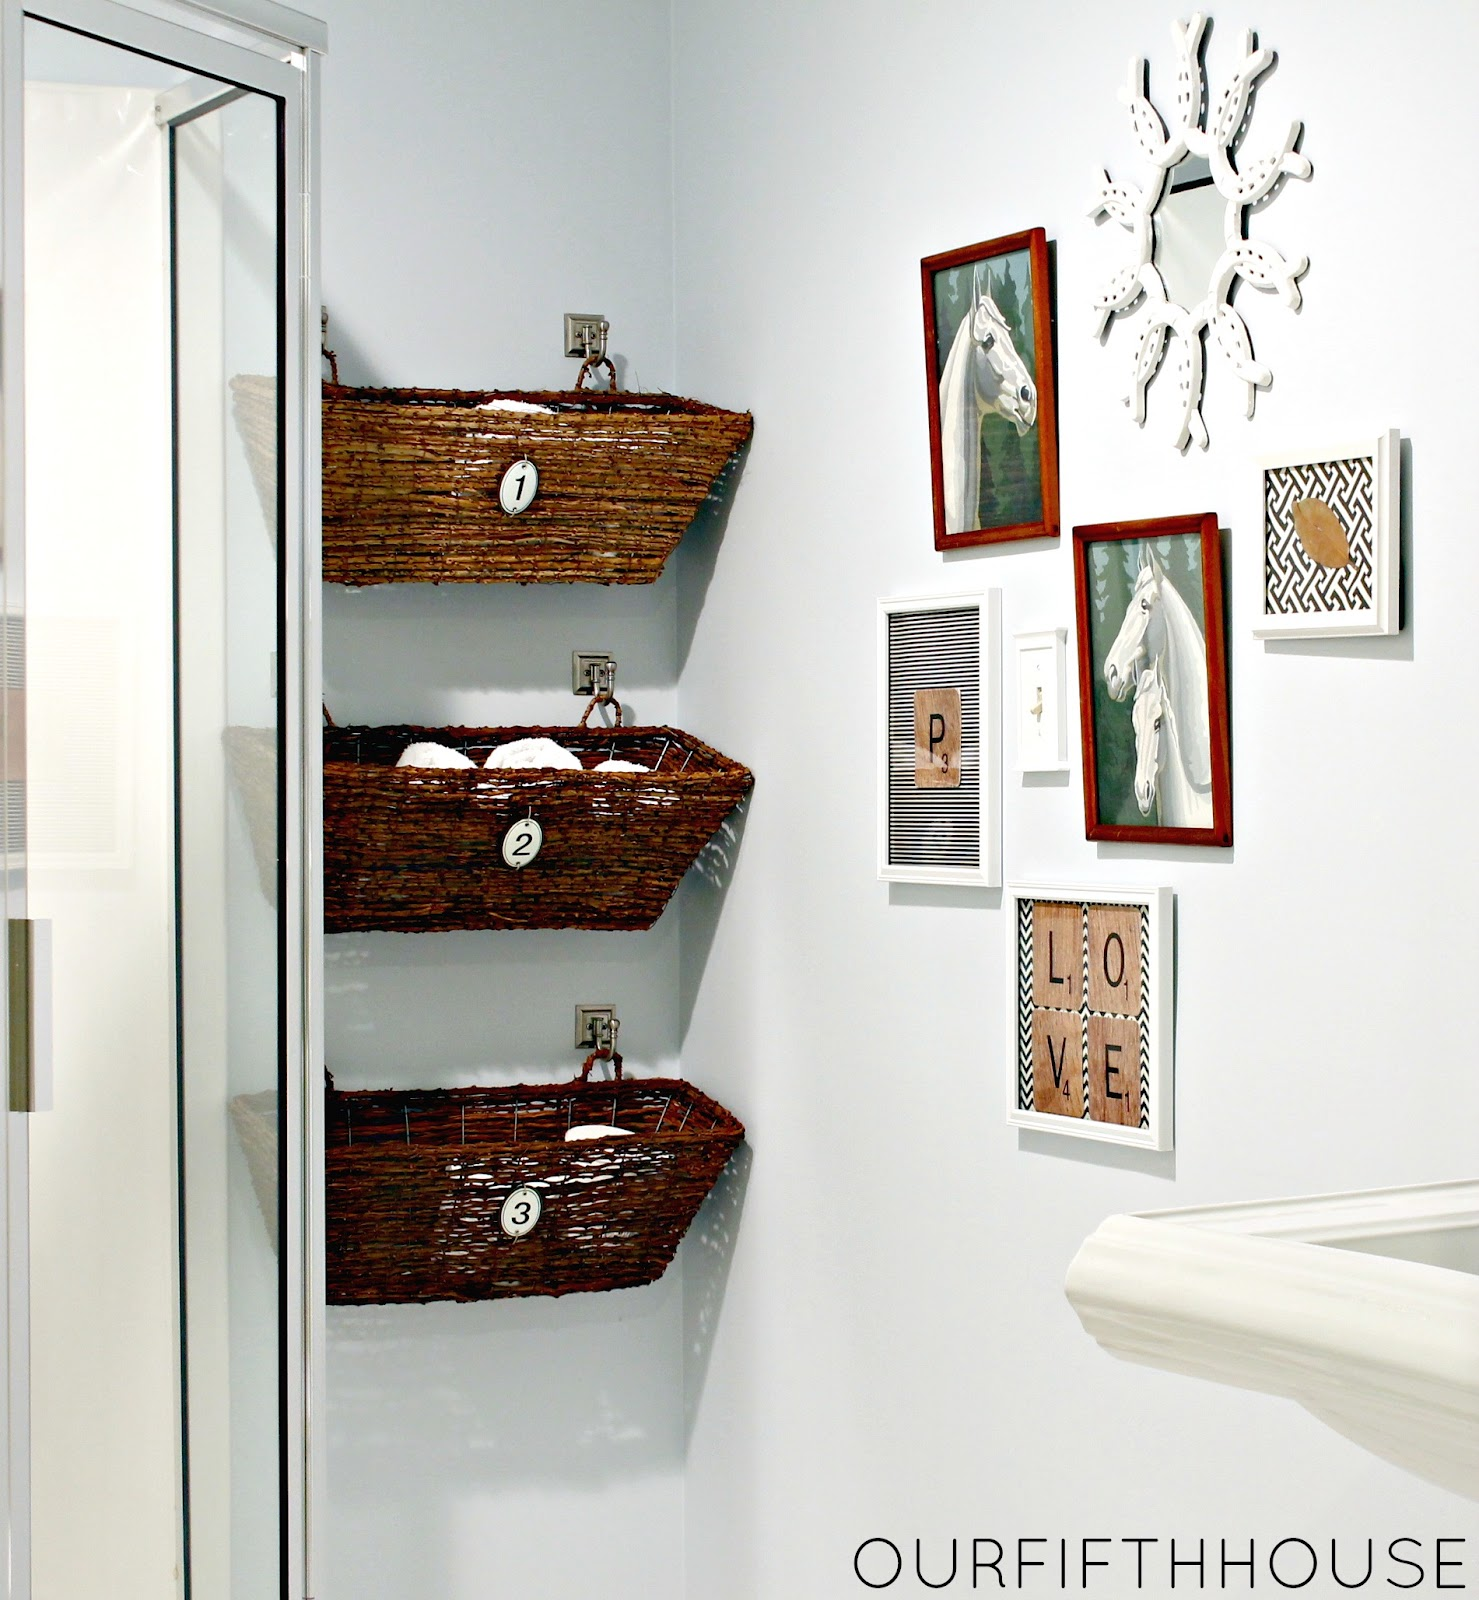 Design Small Bathroom Storage Ideas 15 small bathroom storage ideas wall solutions and shelves for bathrooms